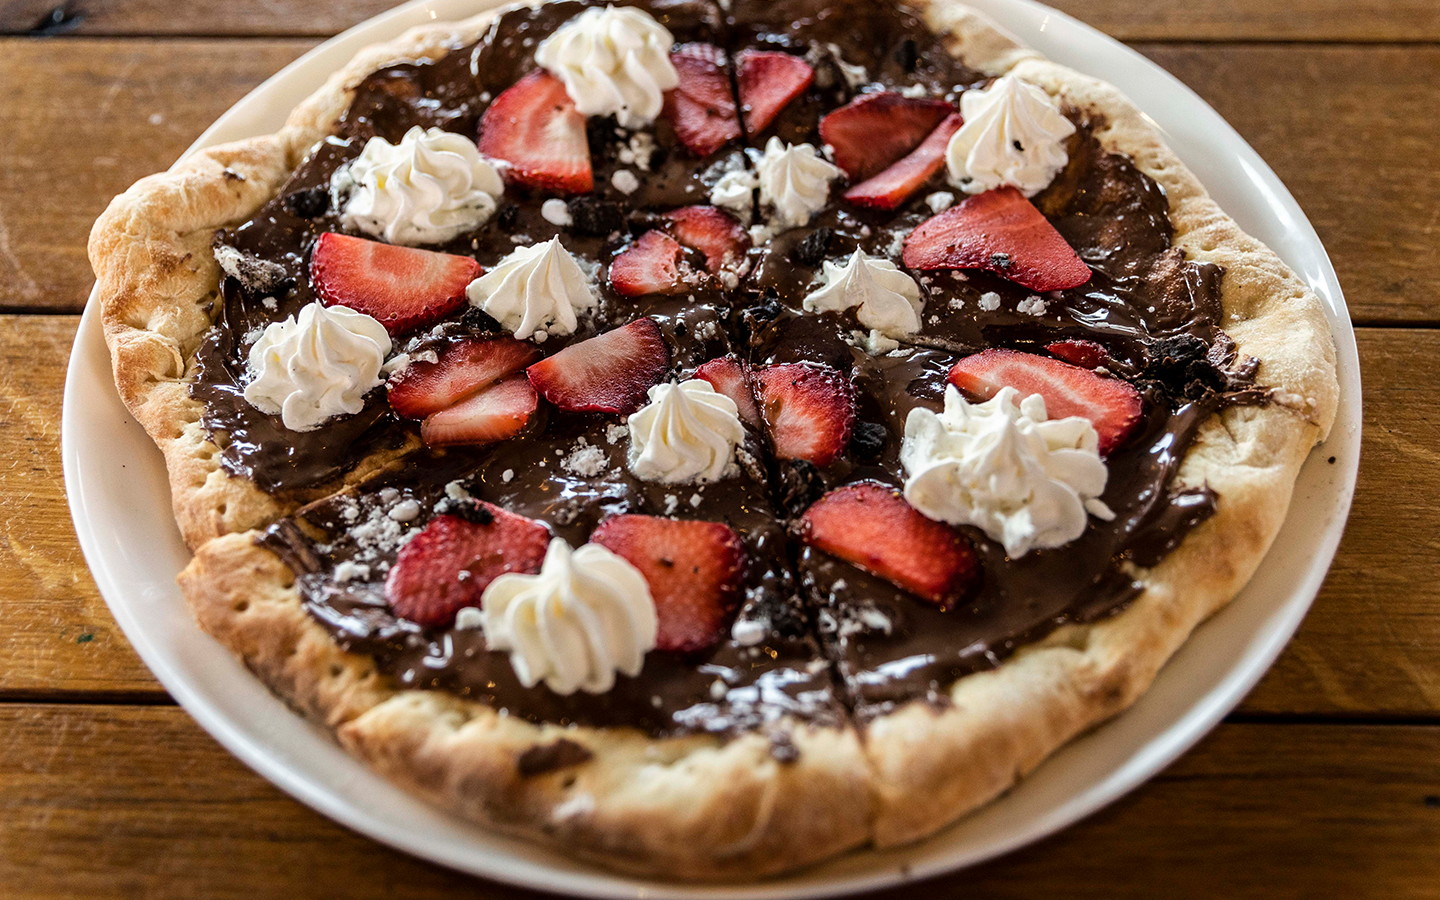 nutella pizza at red oven in Universal Citywalk